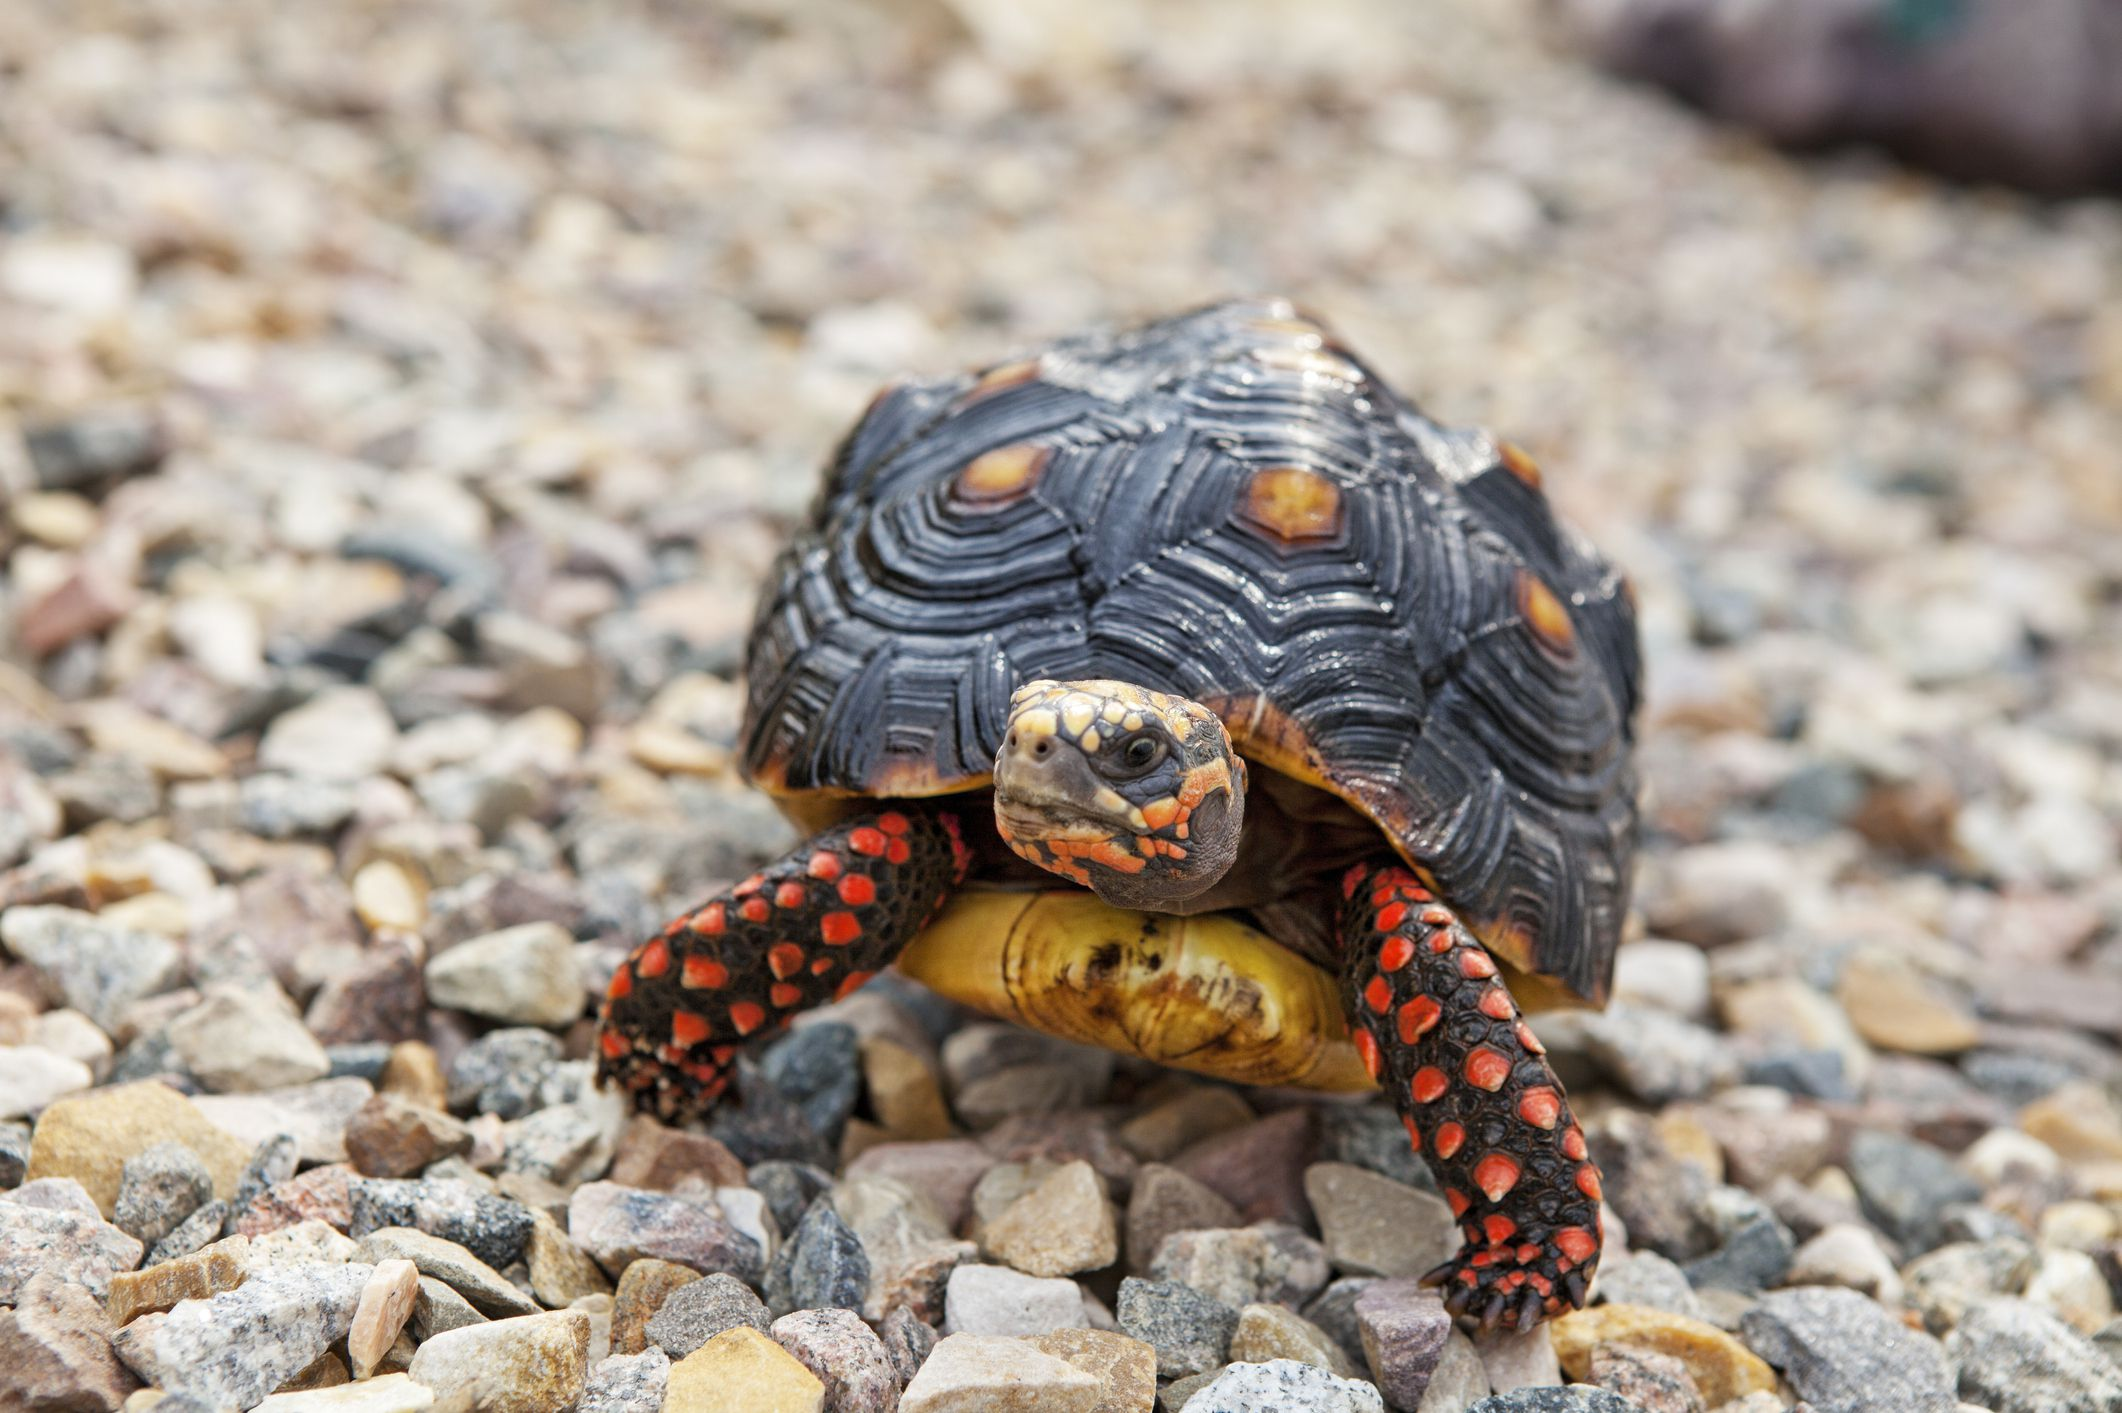 Family Cleans House Finds Pet Tortoise Missing Since 1982